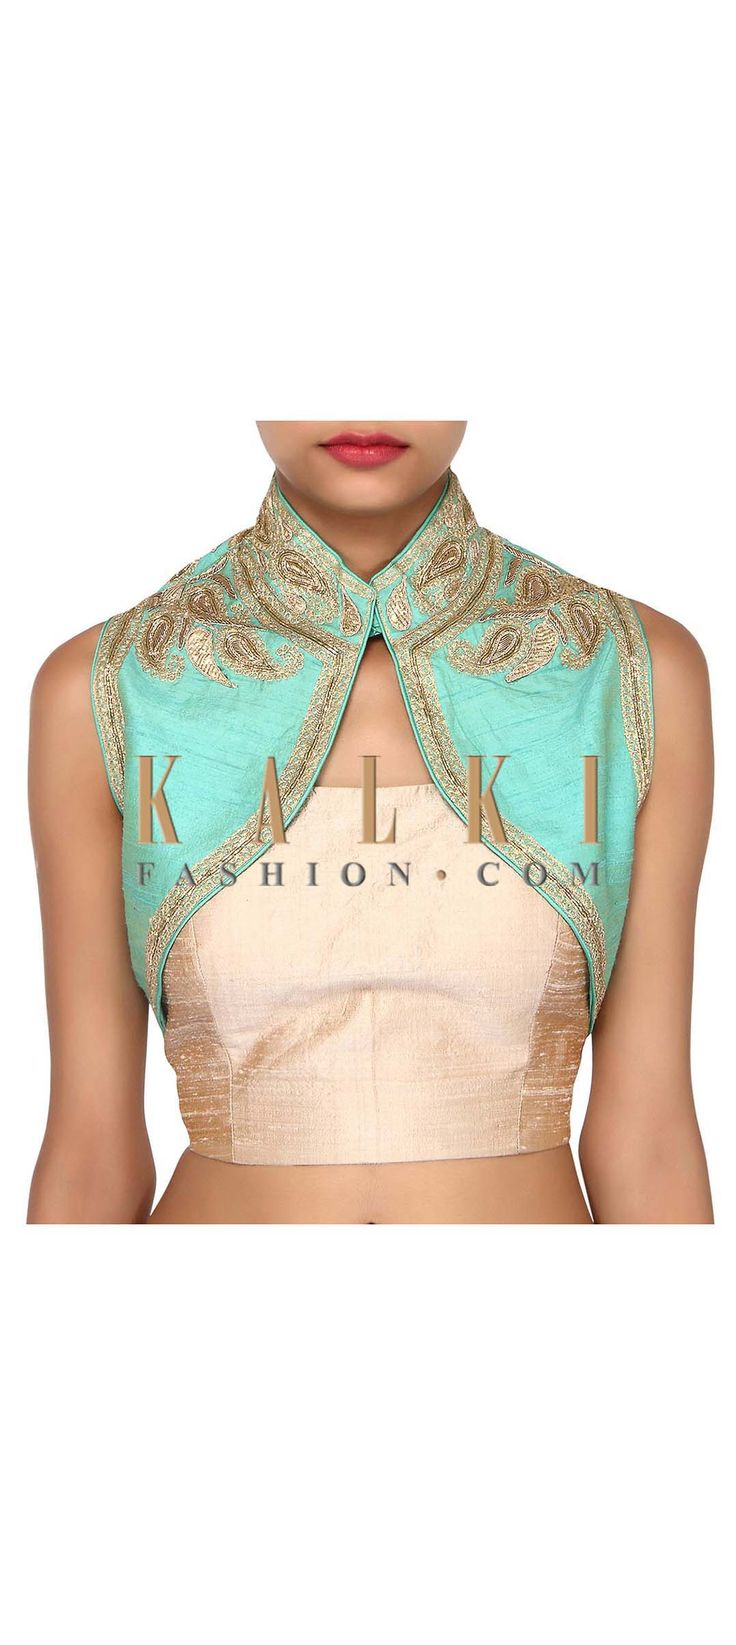 Buy Online from the link below. We ship worldwide (Free Shipping over US$100). Product SKU - 275652. Product Link - http://www.kalkifashion.com/turq-shrug-adorn-in-zardosi-embroidery-only-on-kalki.html